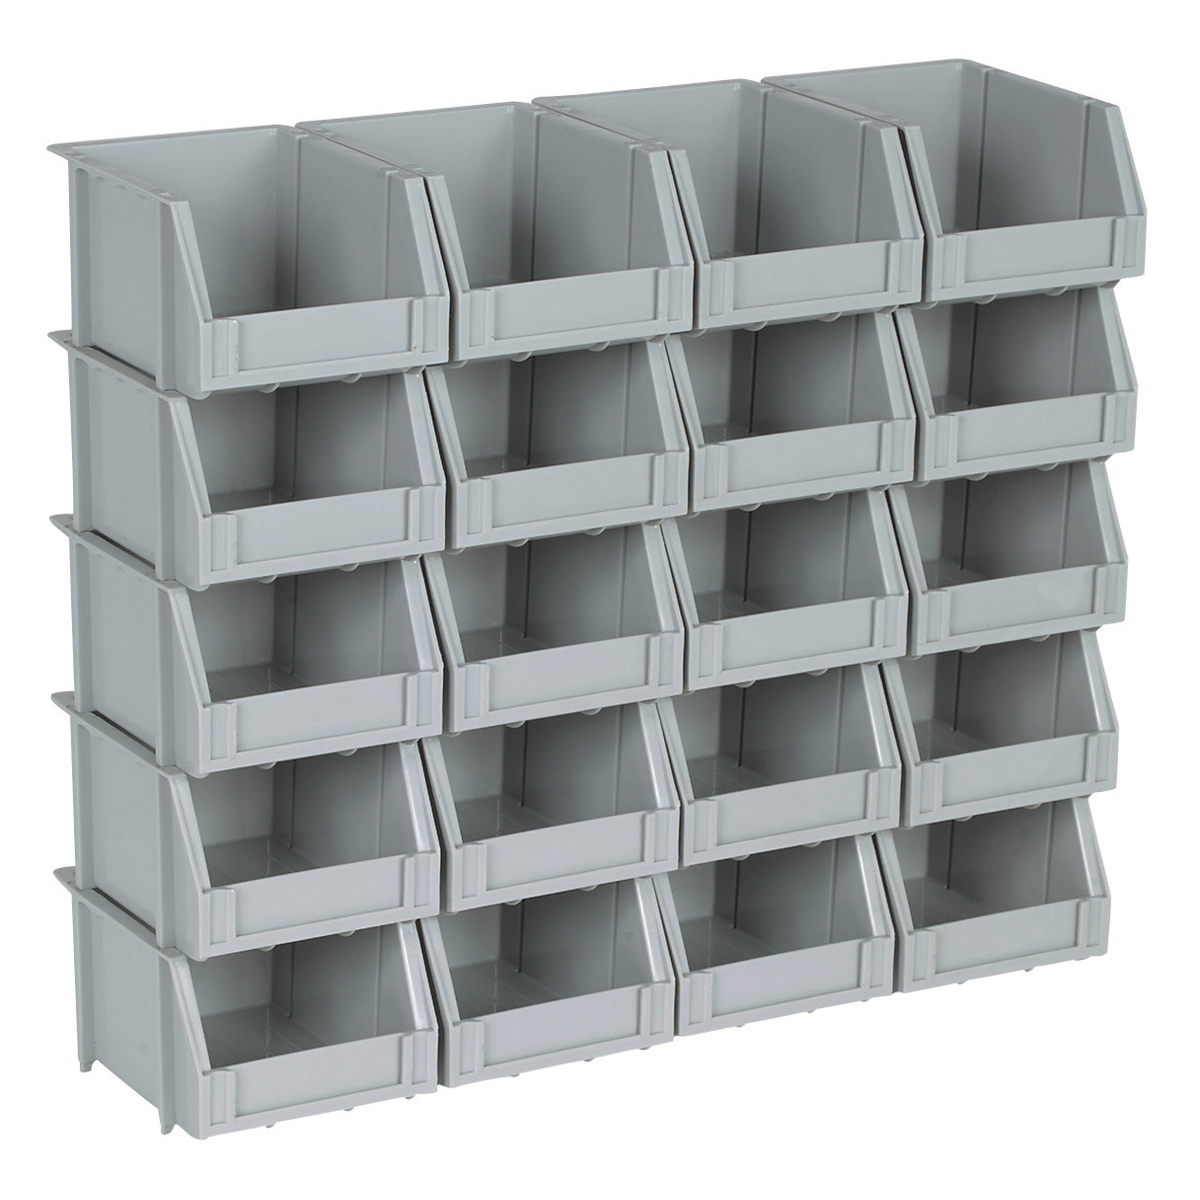 Stackable Storage Bins Isda Network. 20 Piece Poly Bins And Rails